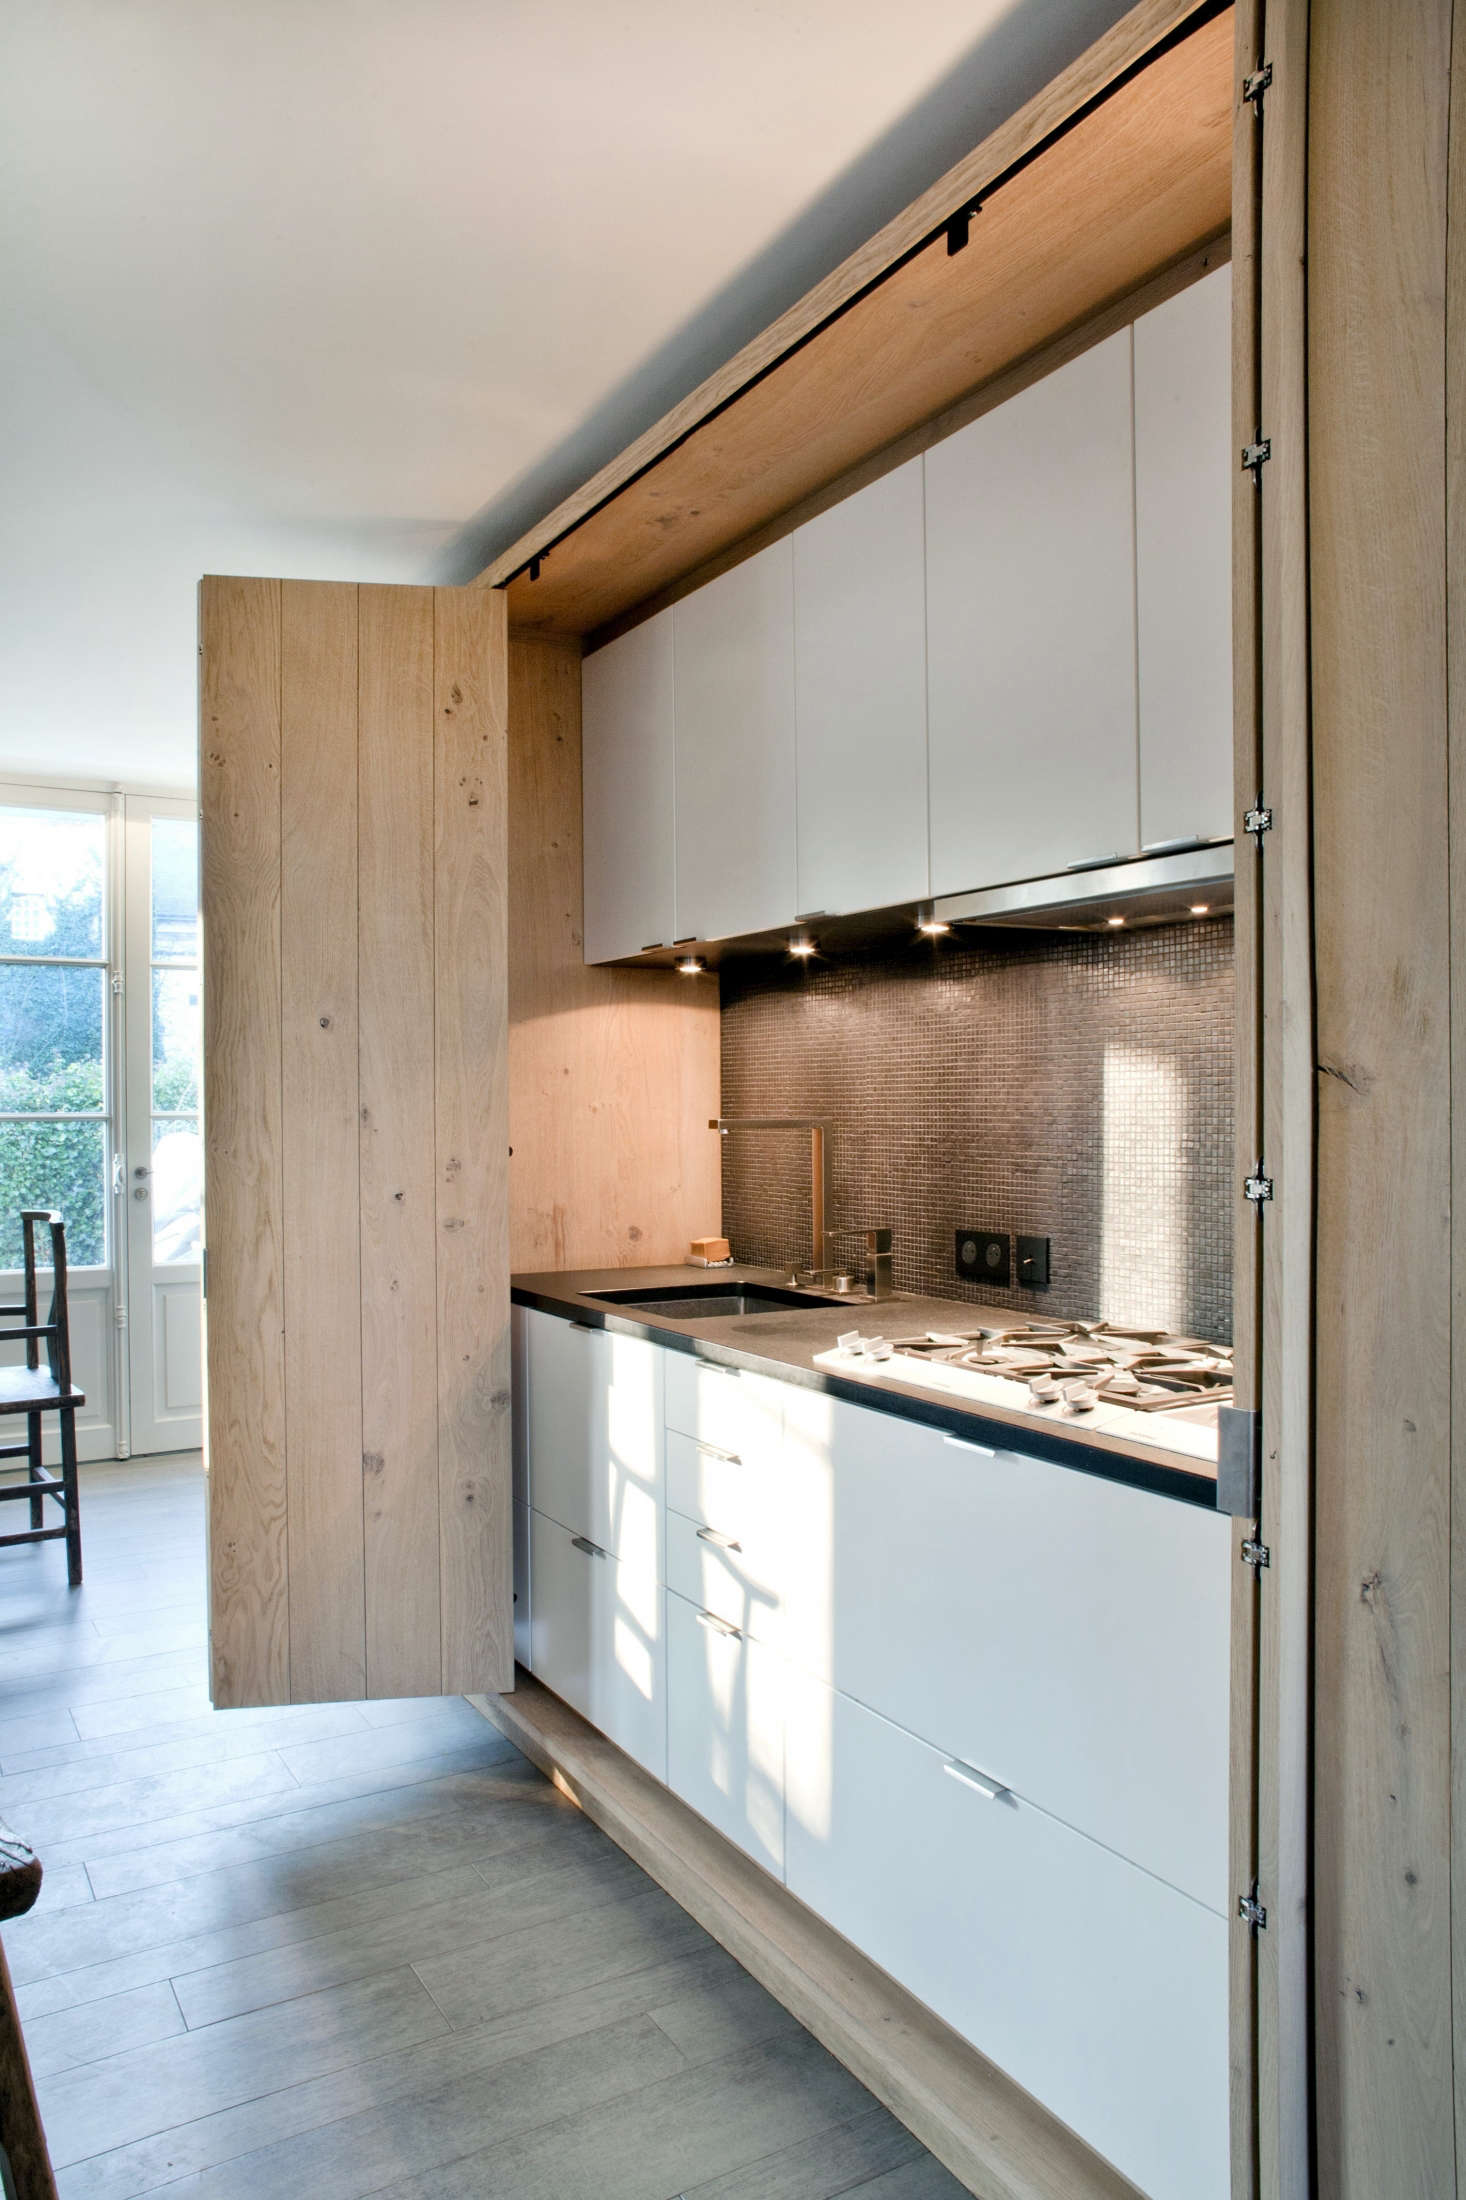 French architect Olivier Chabaud concealed an entire kitchen behind folding doors in this country house.